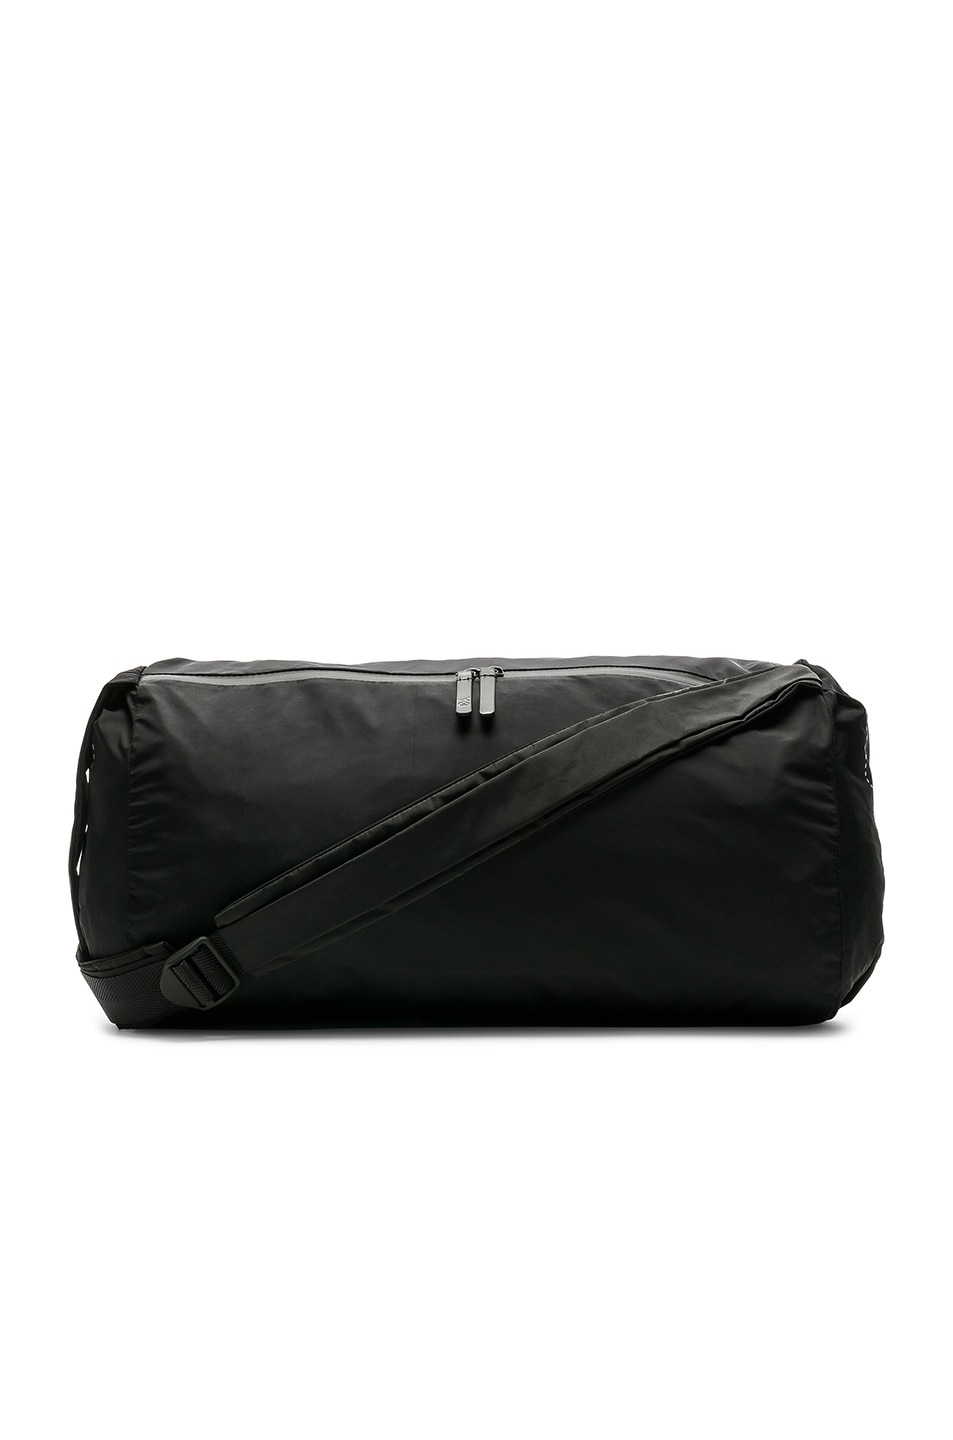 Image 1 of Y-3 Yohji Yamamoto Gym Bag in Black